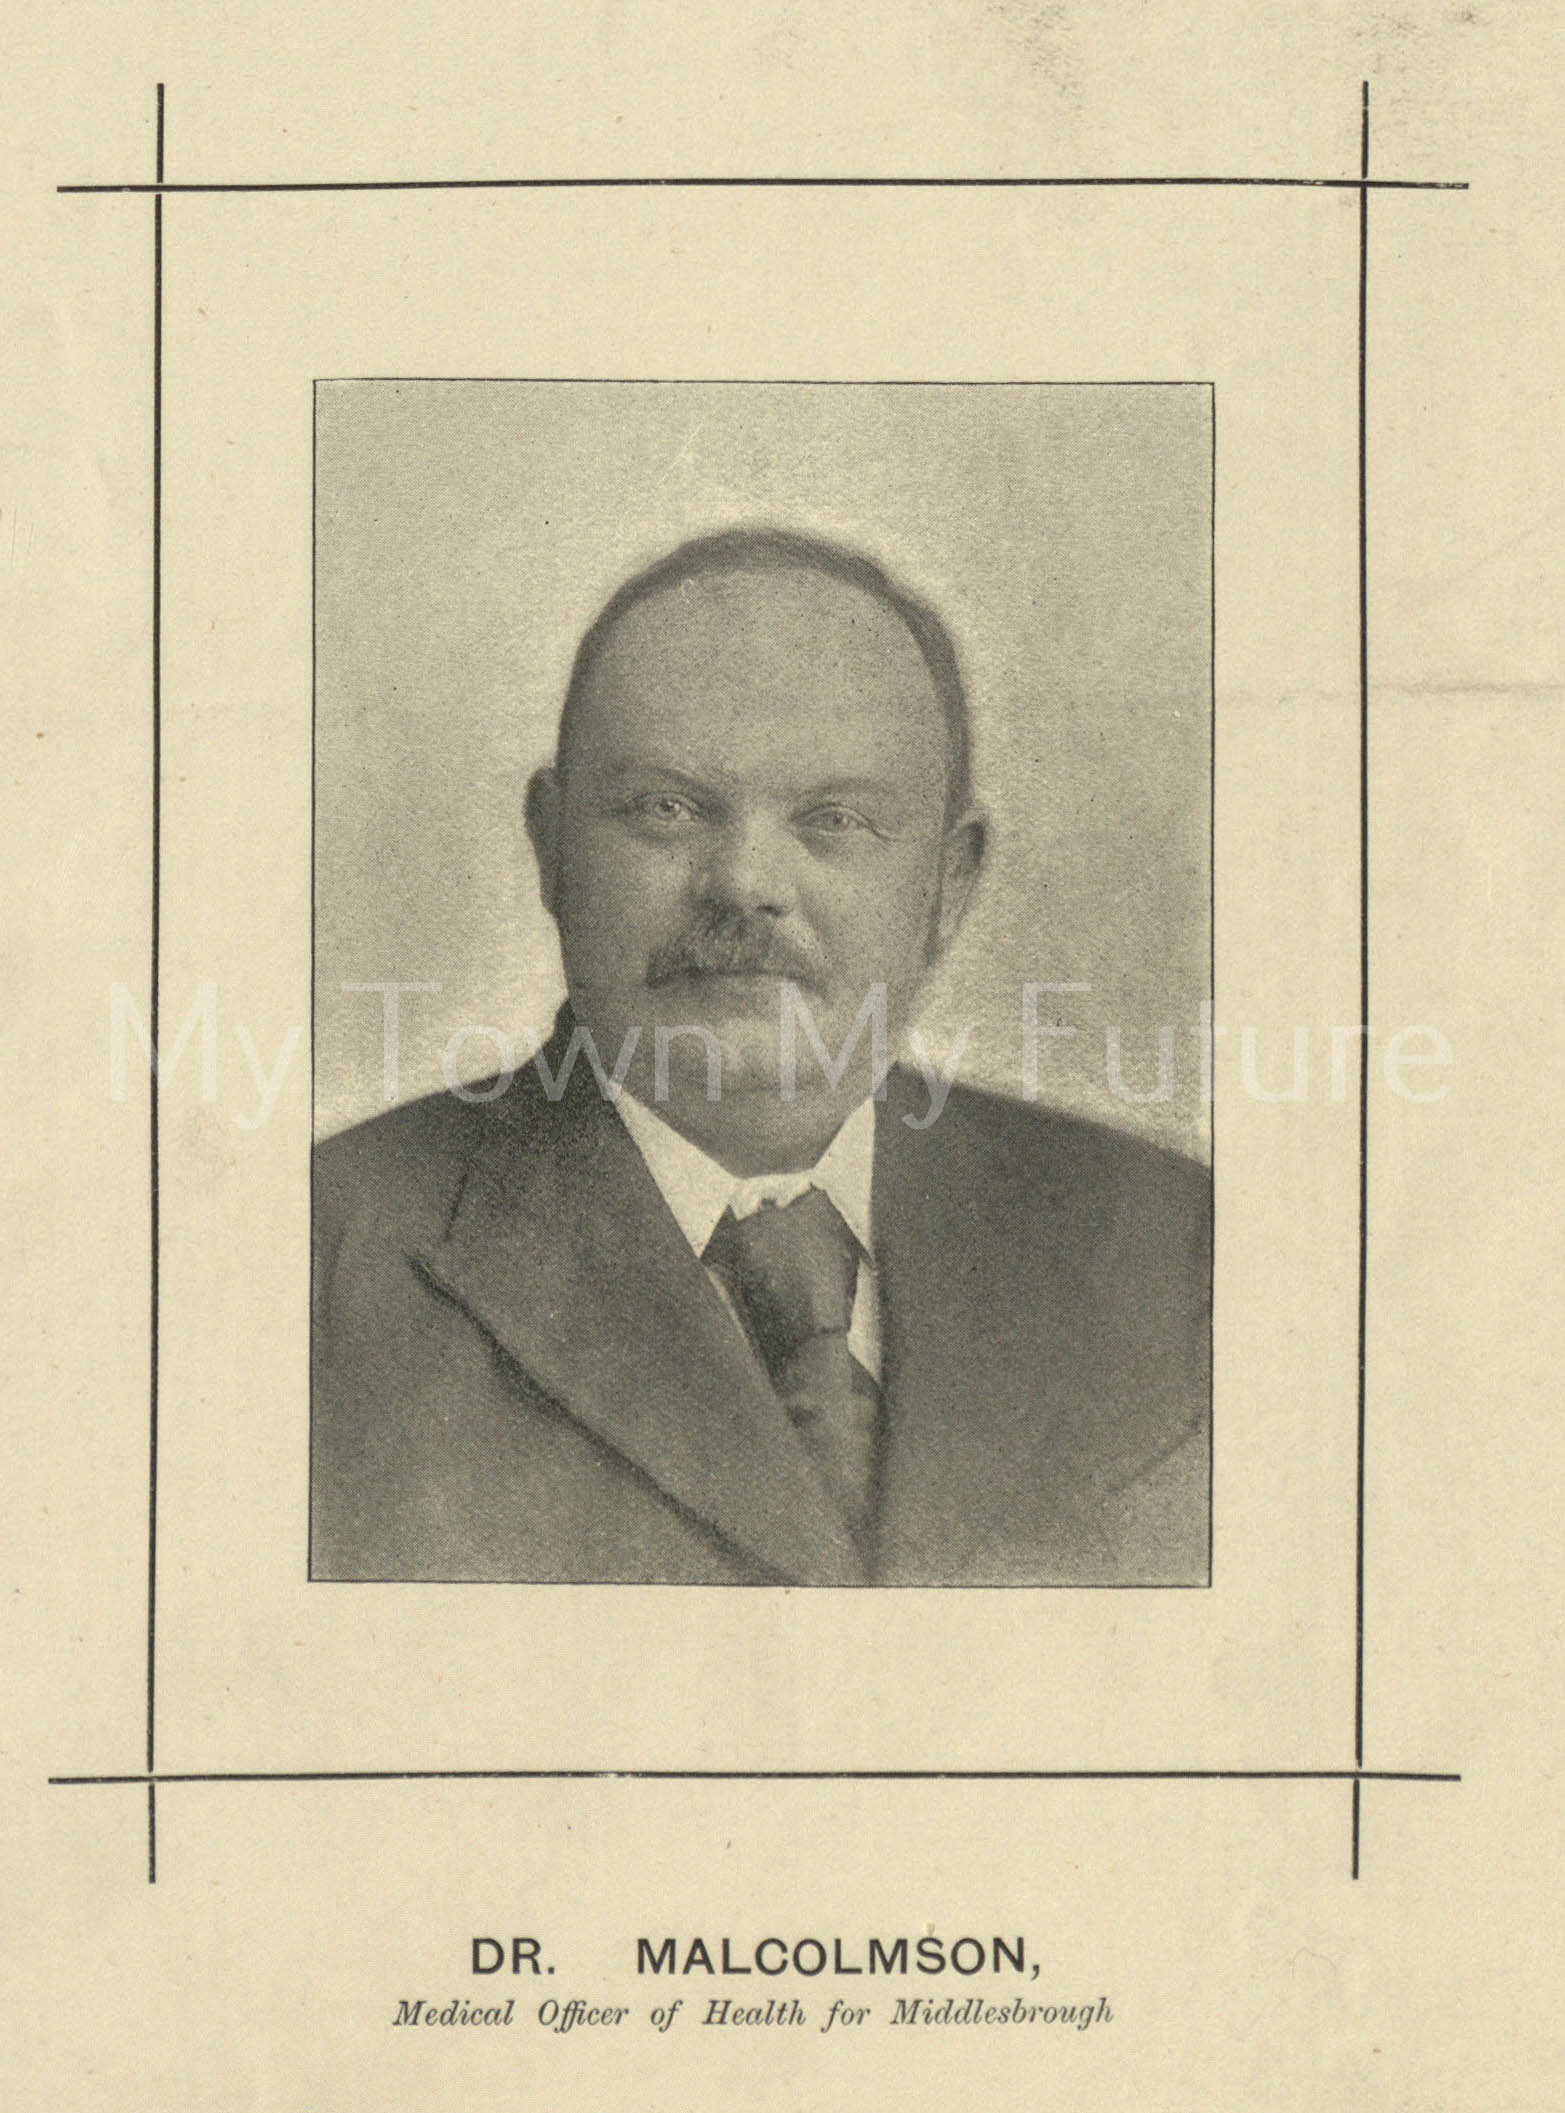 Dr John Andrew Malcolmson_27th April 1895_North Eastern Weekly Gazette